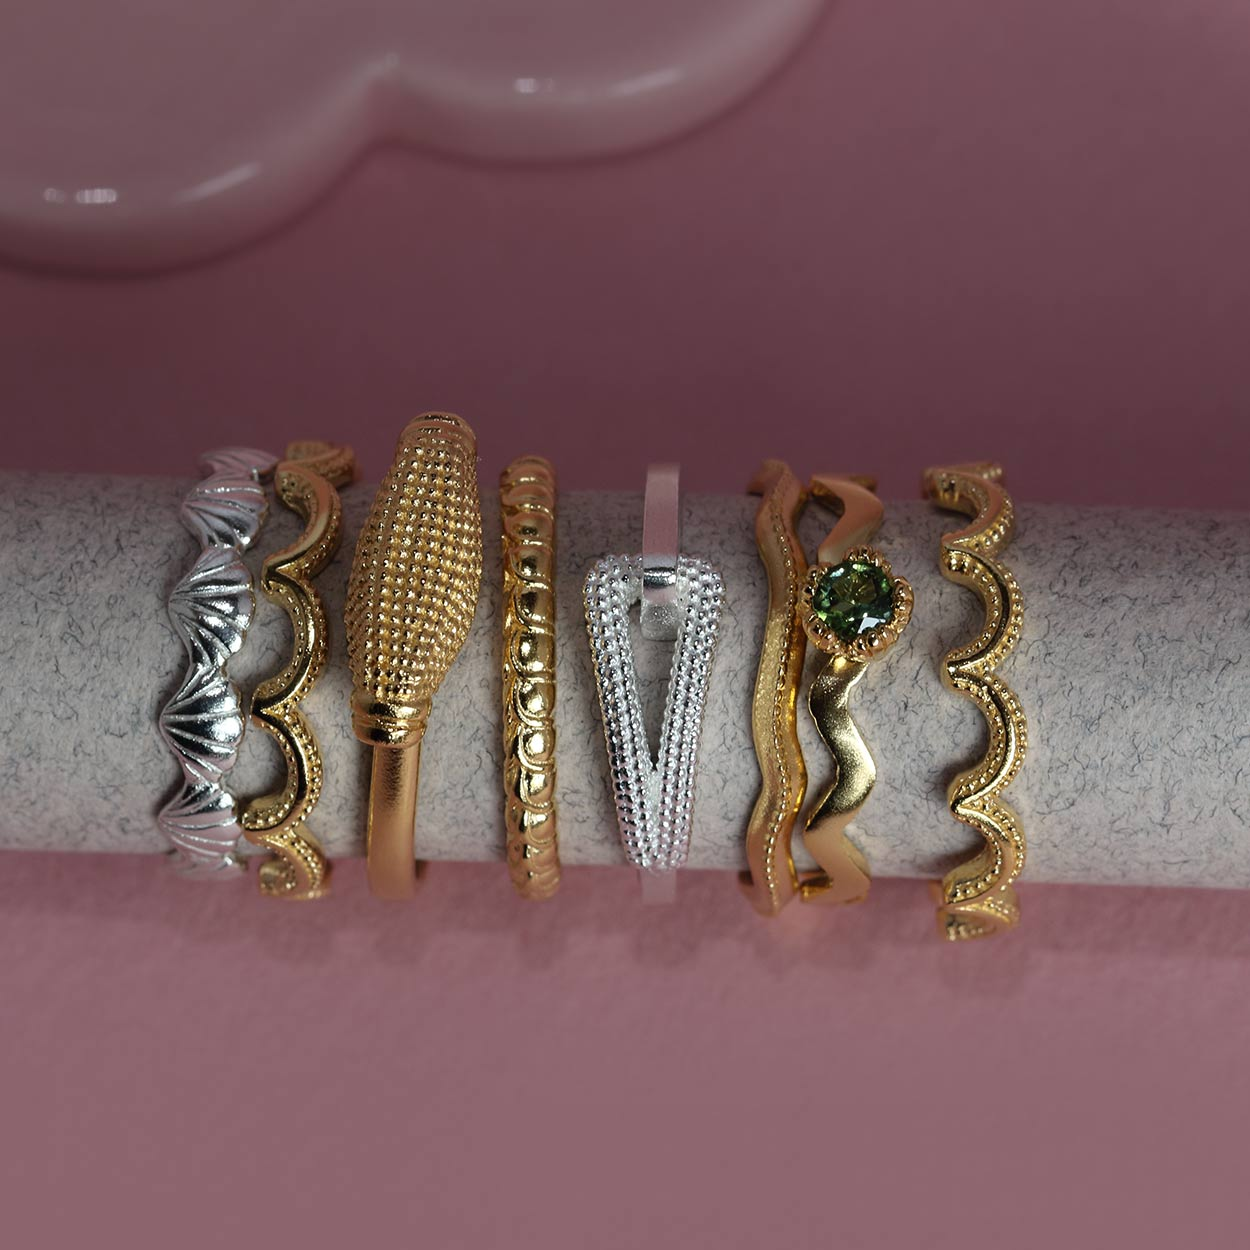 A selection of gold and silver milgrain rings